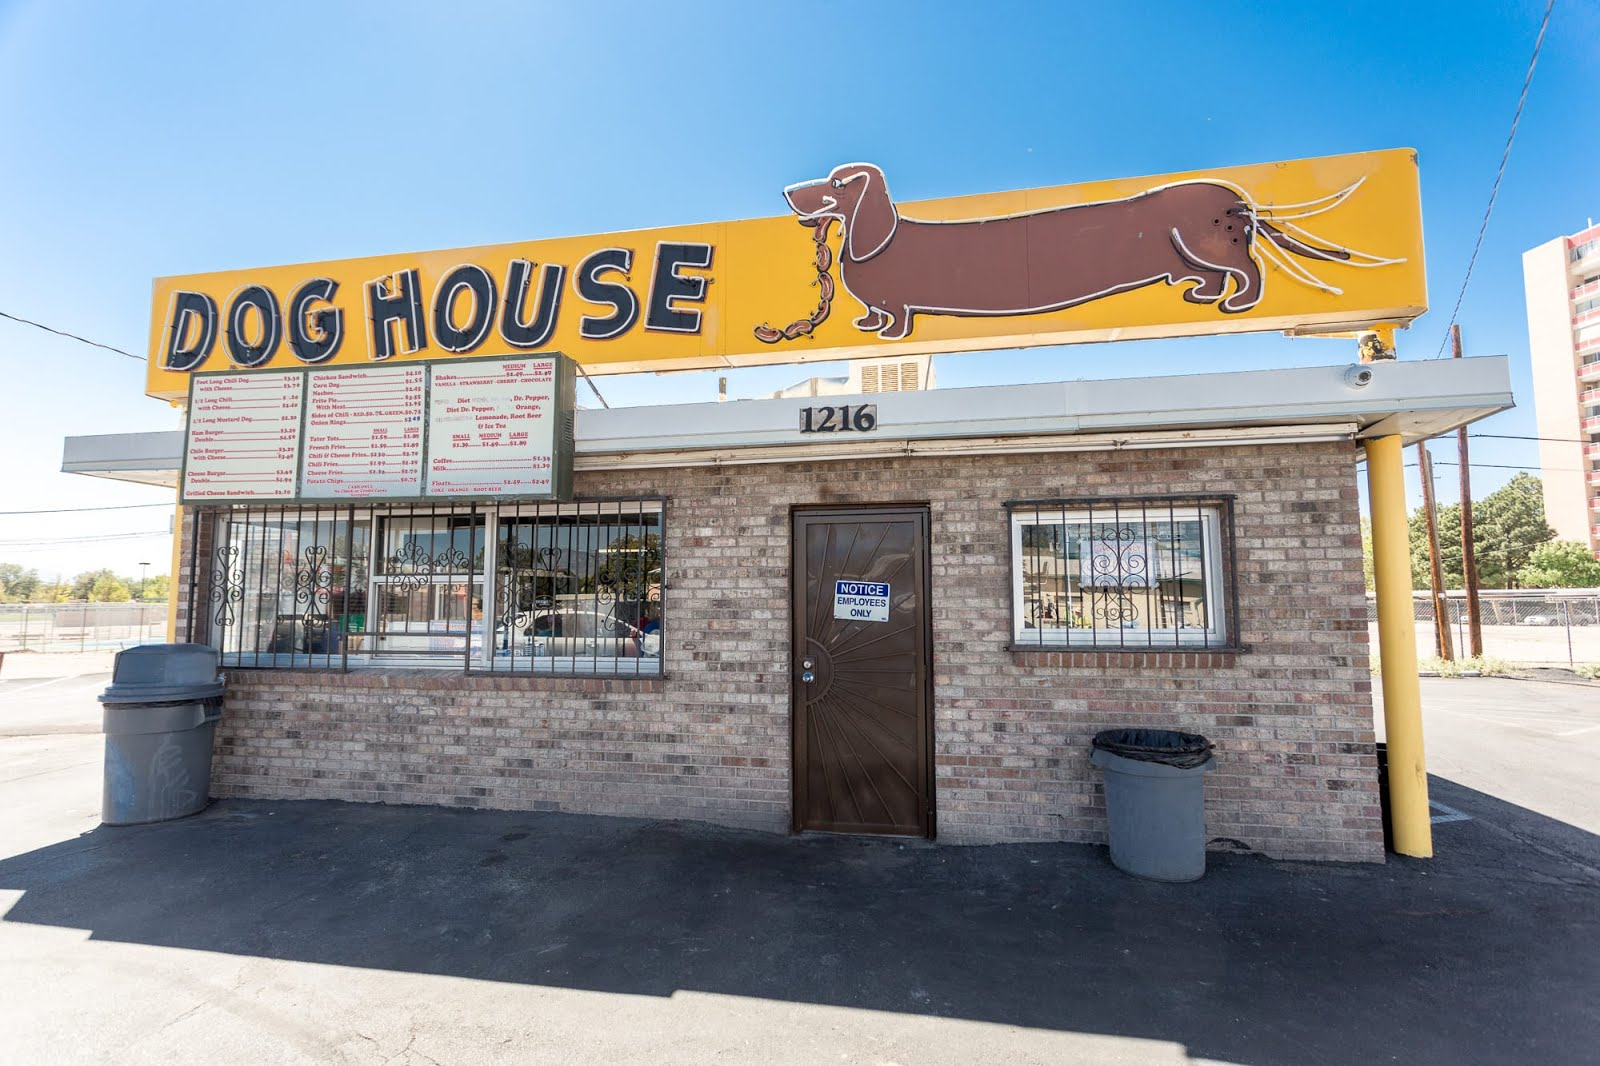 20 things to do in albuquerque finding the universe for Dog house albuquerque